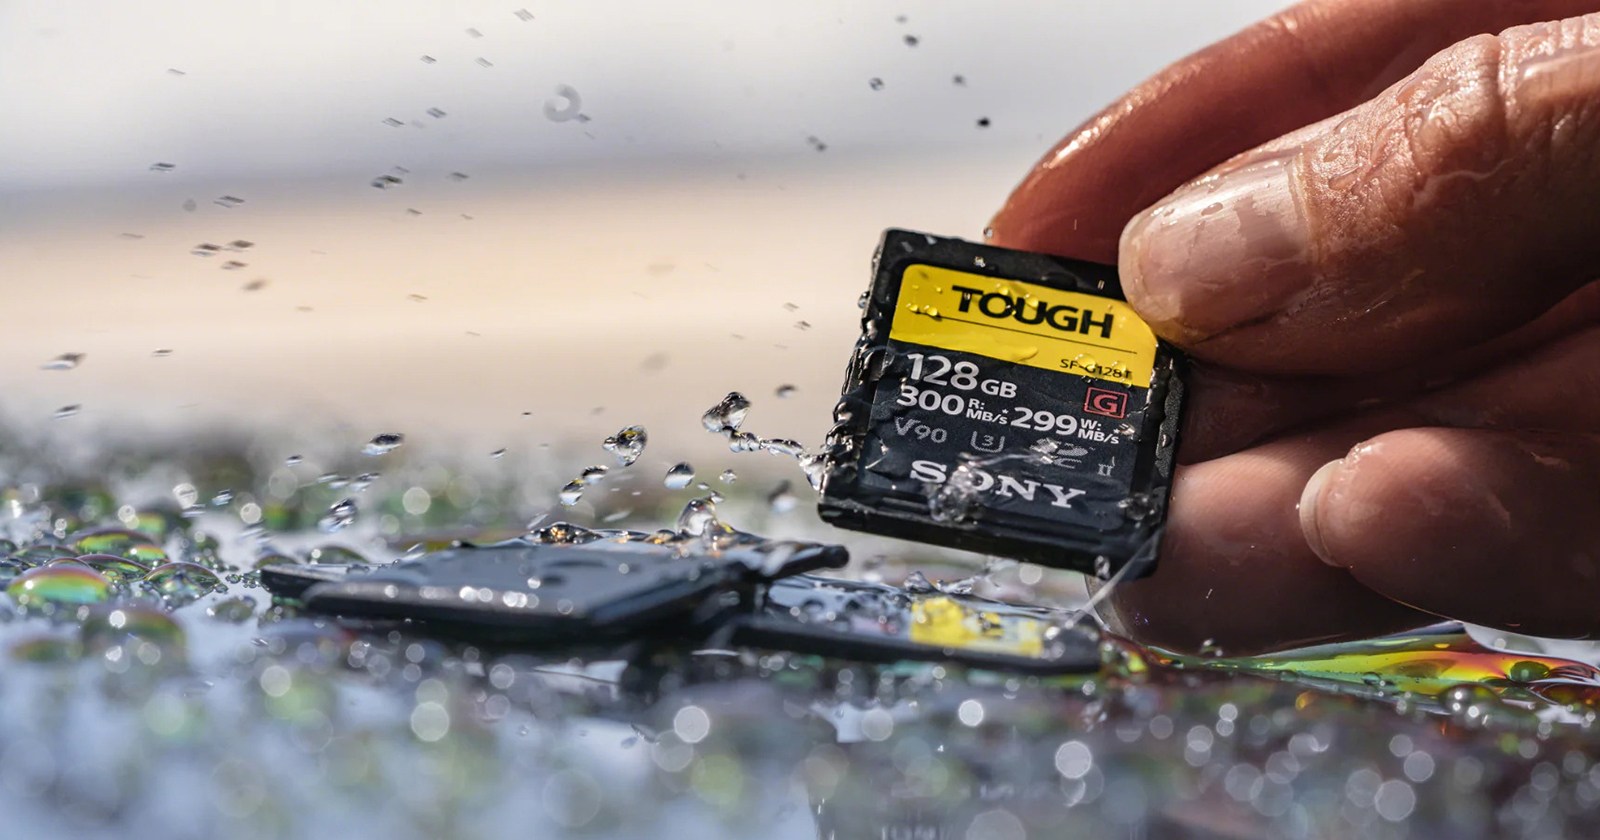 Sony Product Advisory: These Popular SD Cards Can Corrupt Your Footage